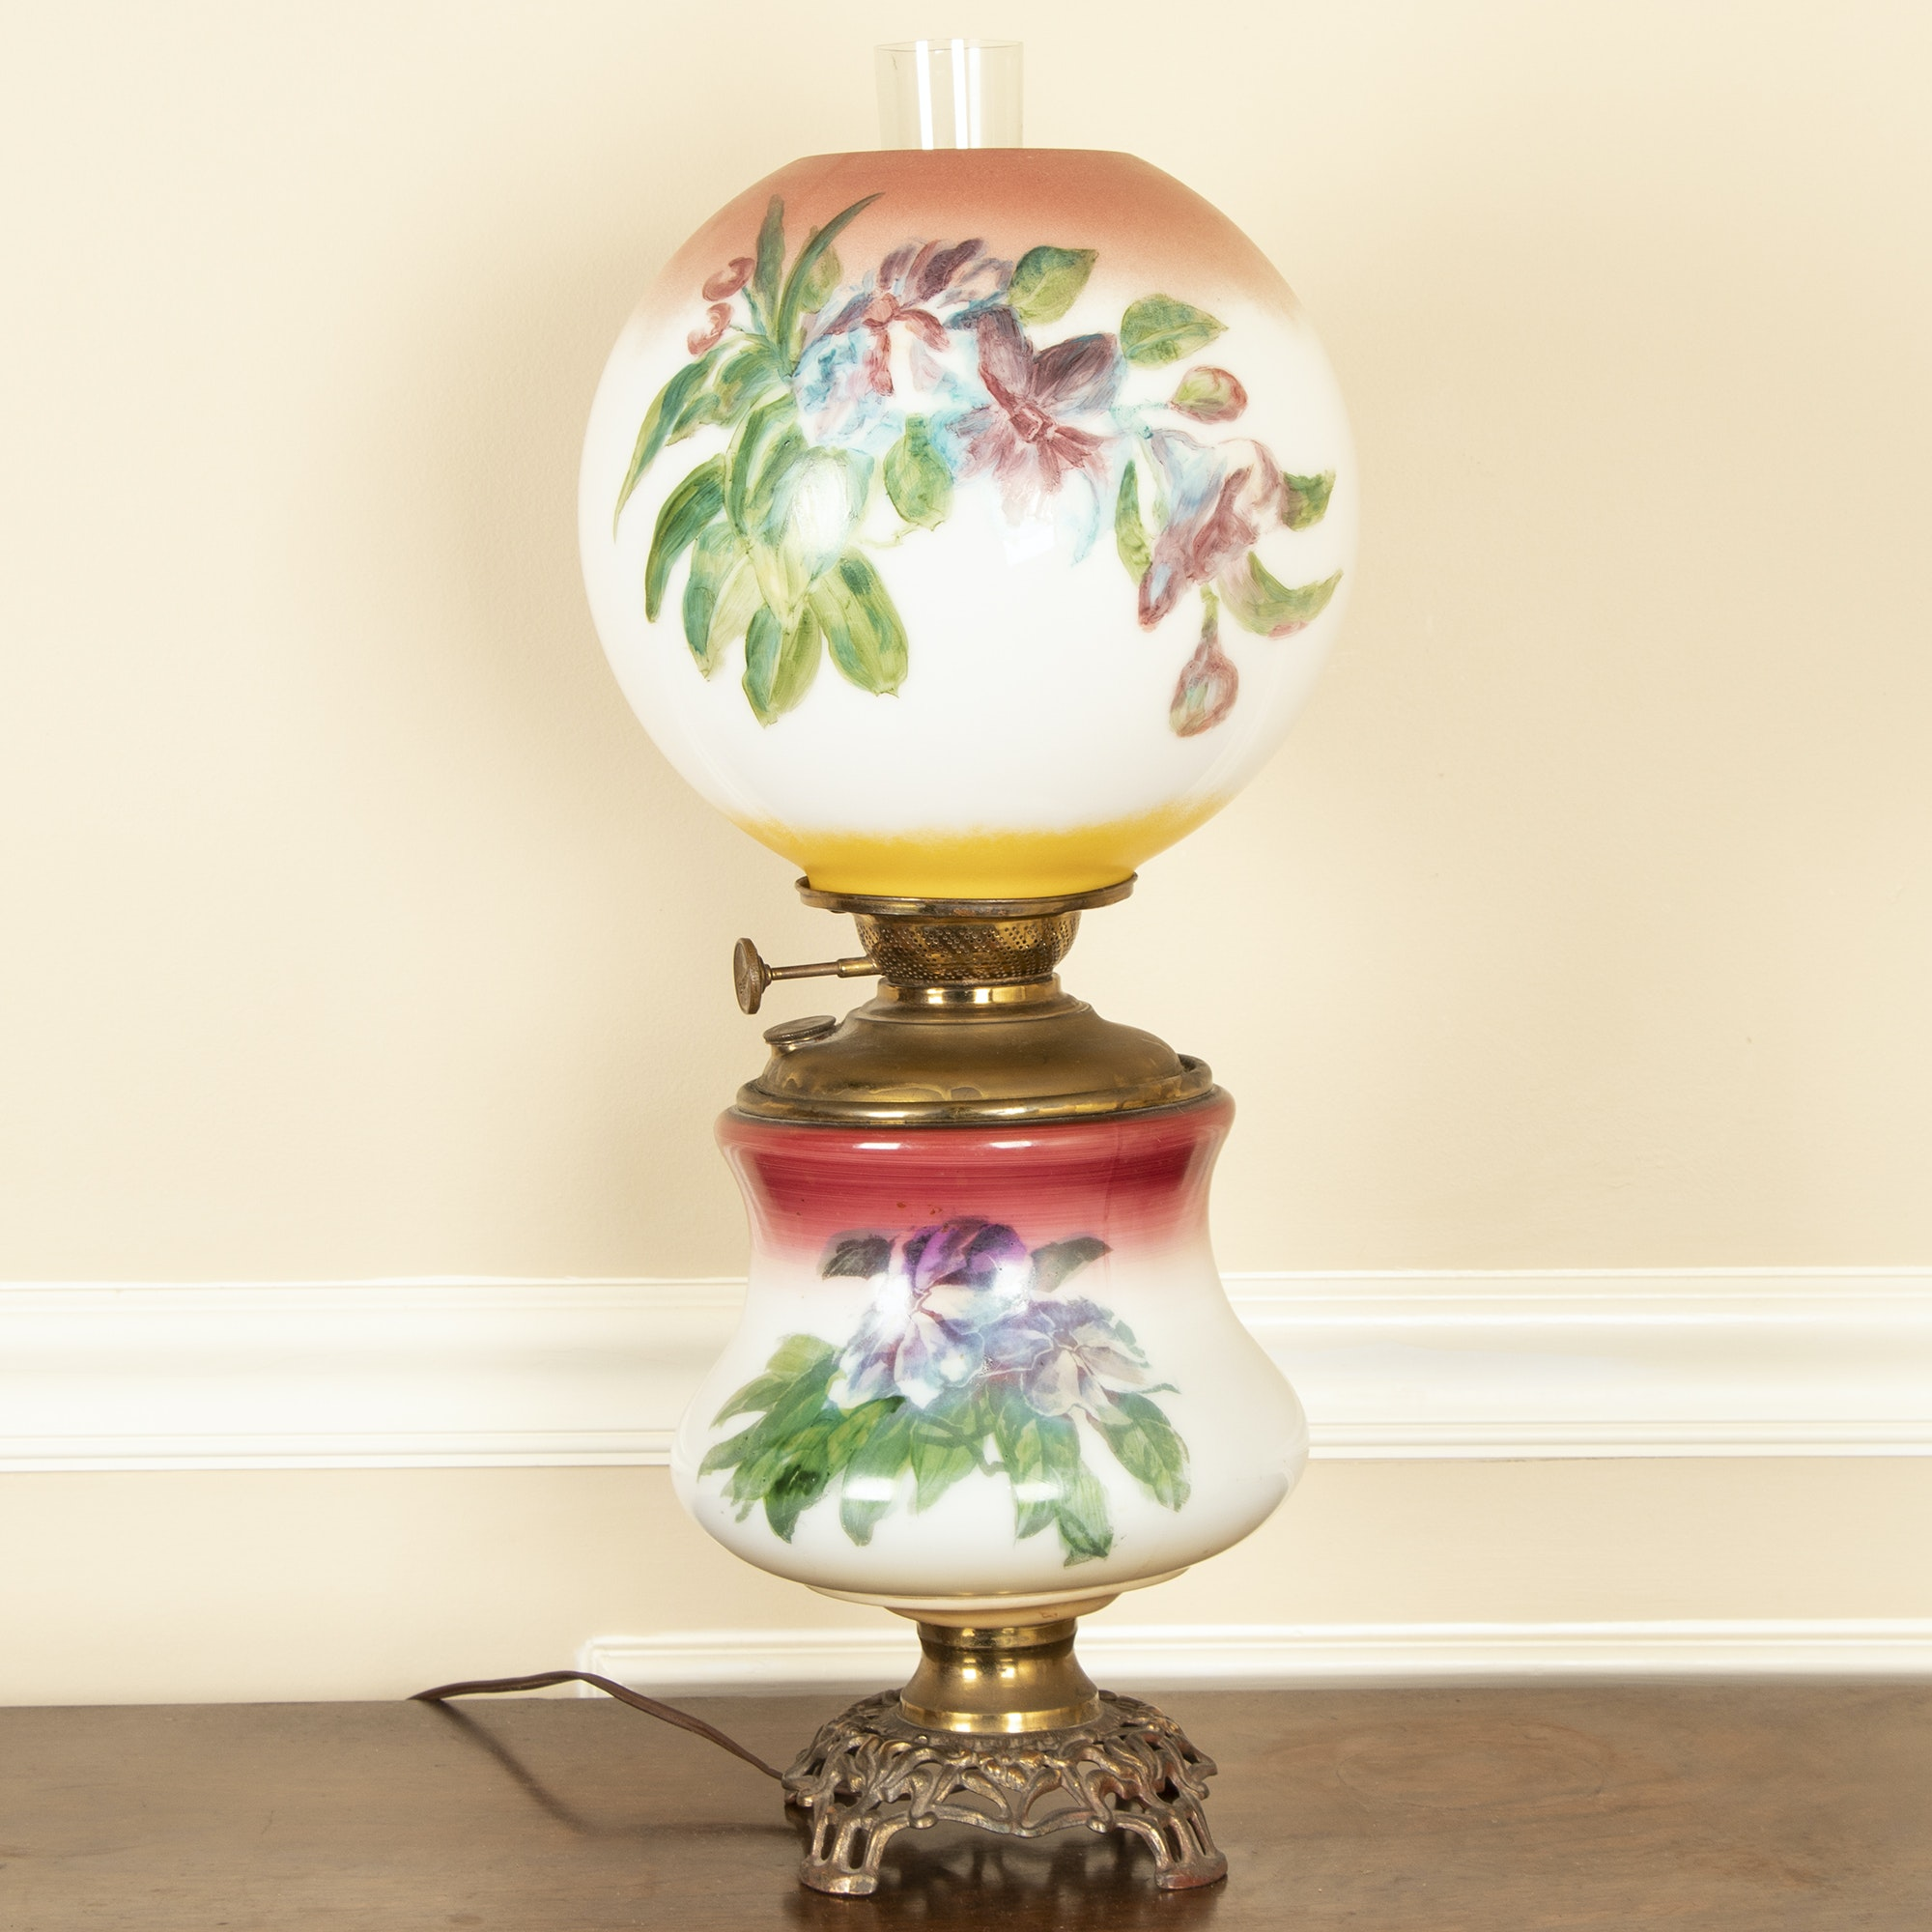 Converted Hand-Painted Parlor Lamp, Early 20th Century